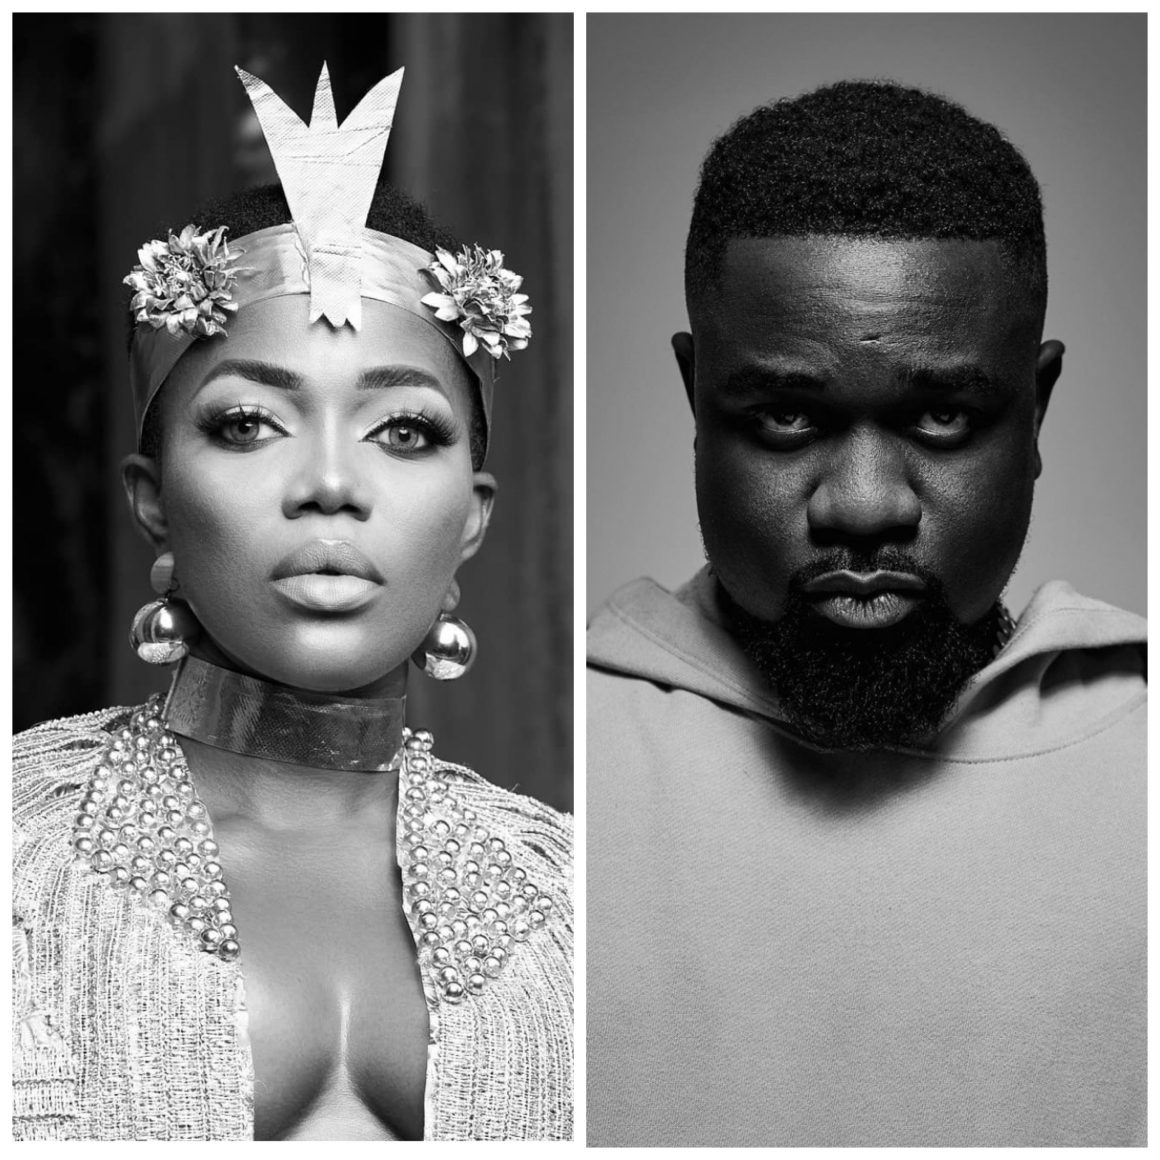 sarkodie-refused-to-feature-on-my-song-because-it-was-too-profane-for-his-brand-mzbel